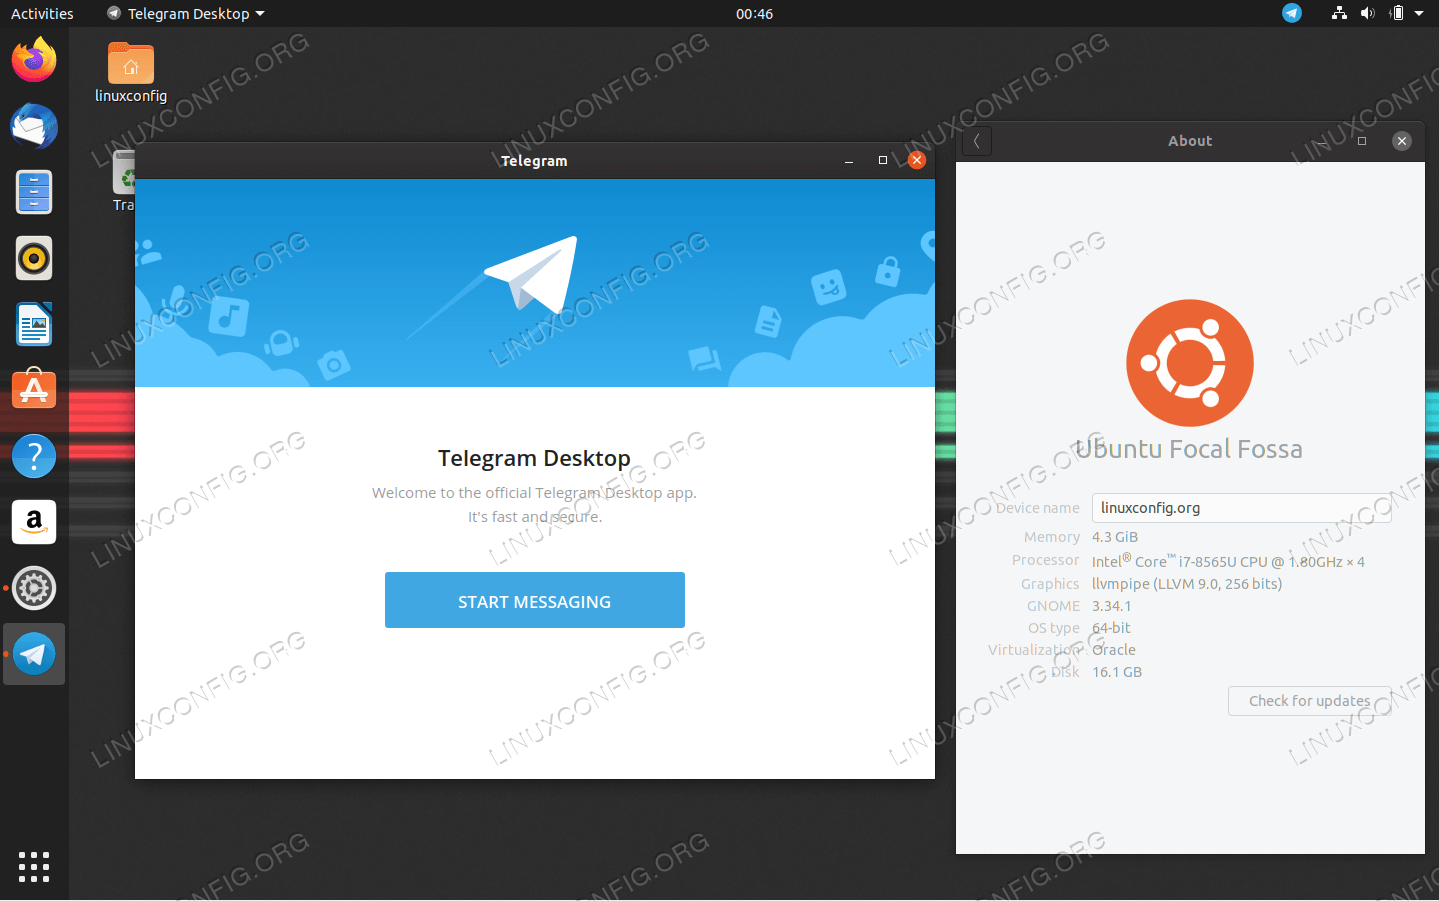 Telegram on Ubuntu 20.04 Focal Fossa Linux